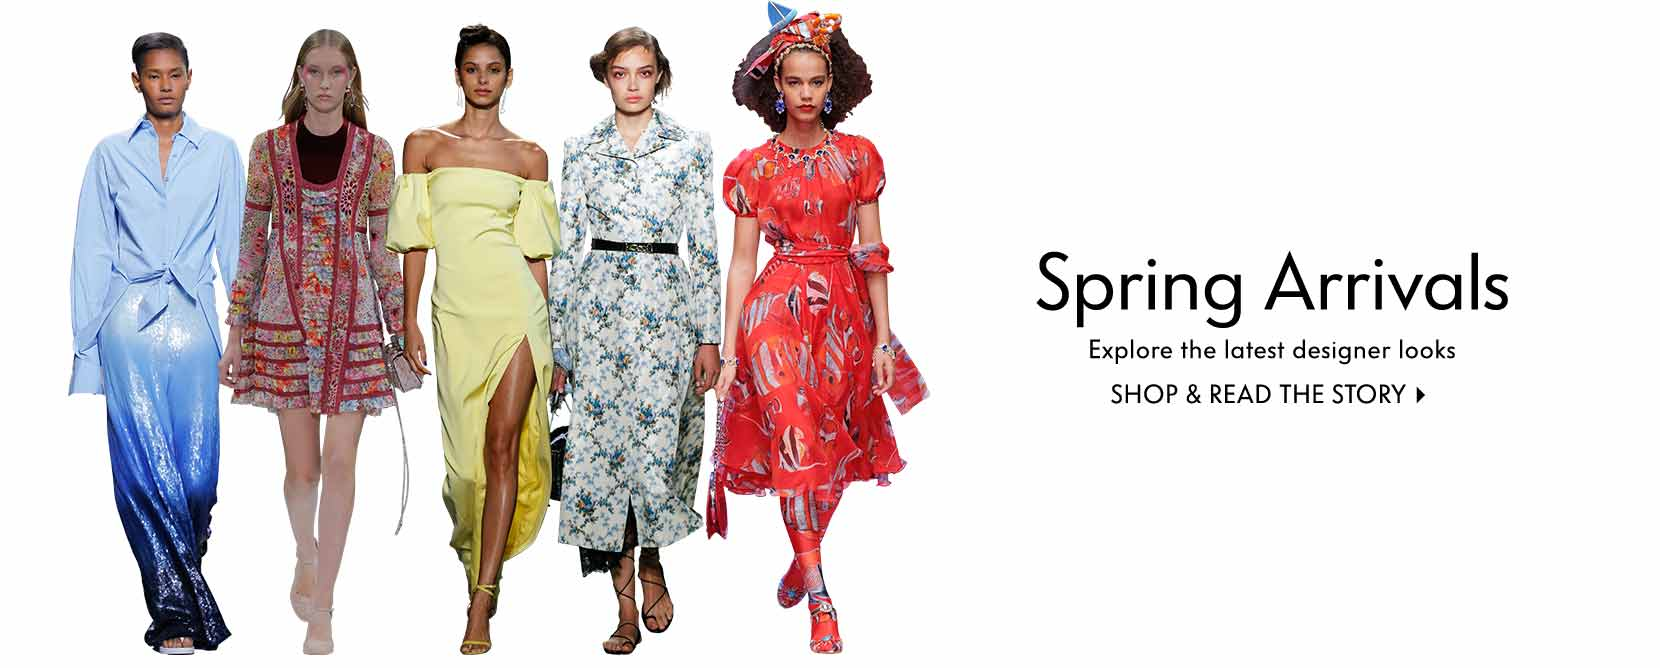 Spring Arrivals - Explore the latest designer looks